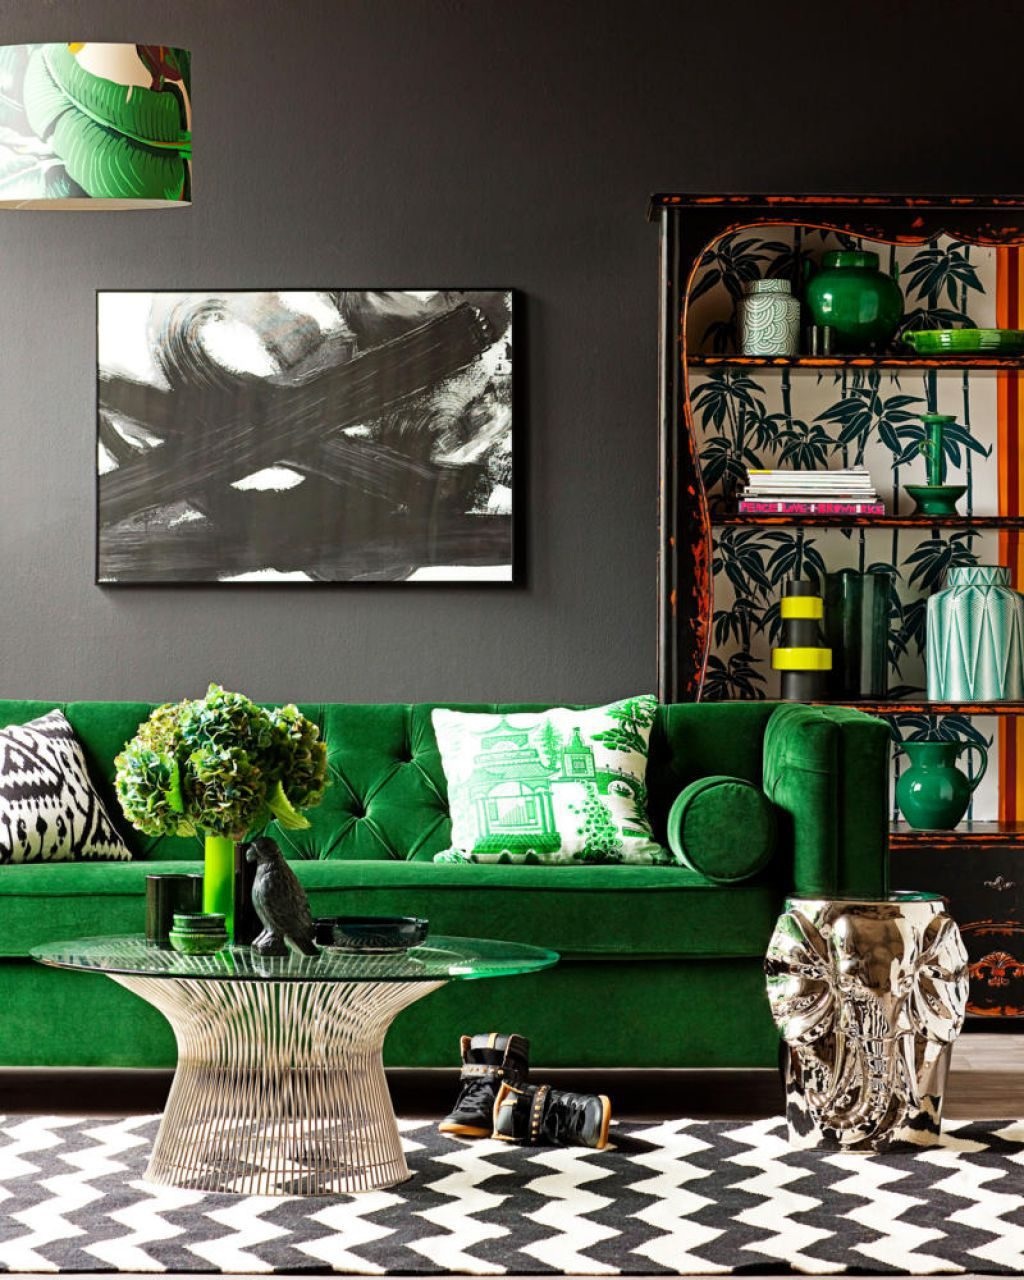 Pantone Color Greenery Black Wall Living Room Black White Chevron Rug Inspiration